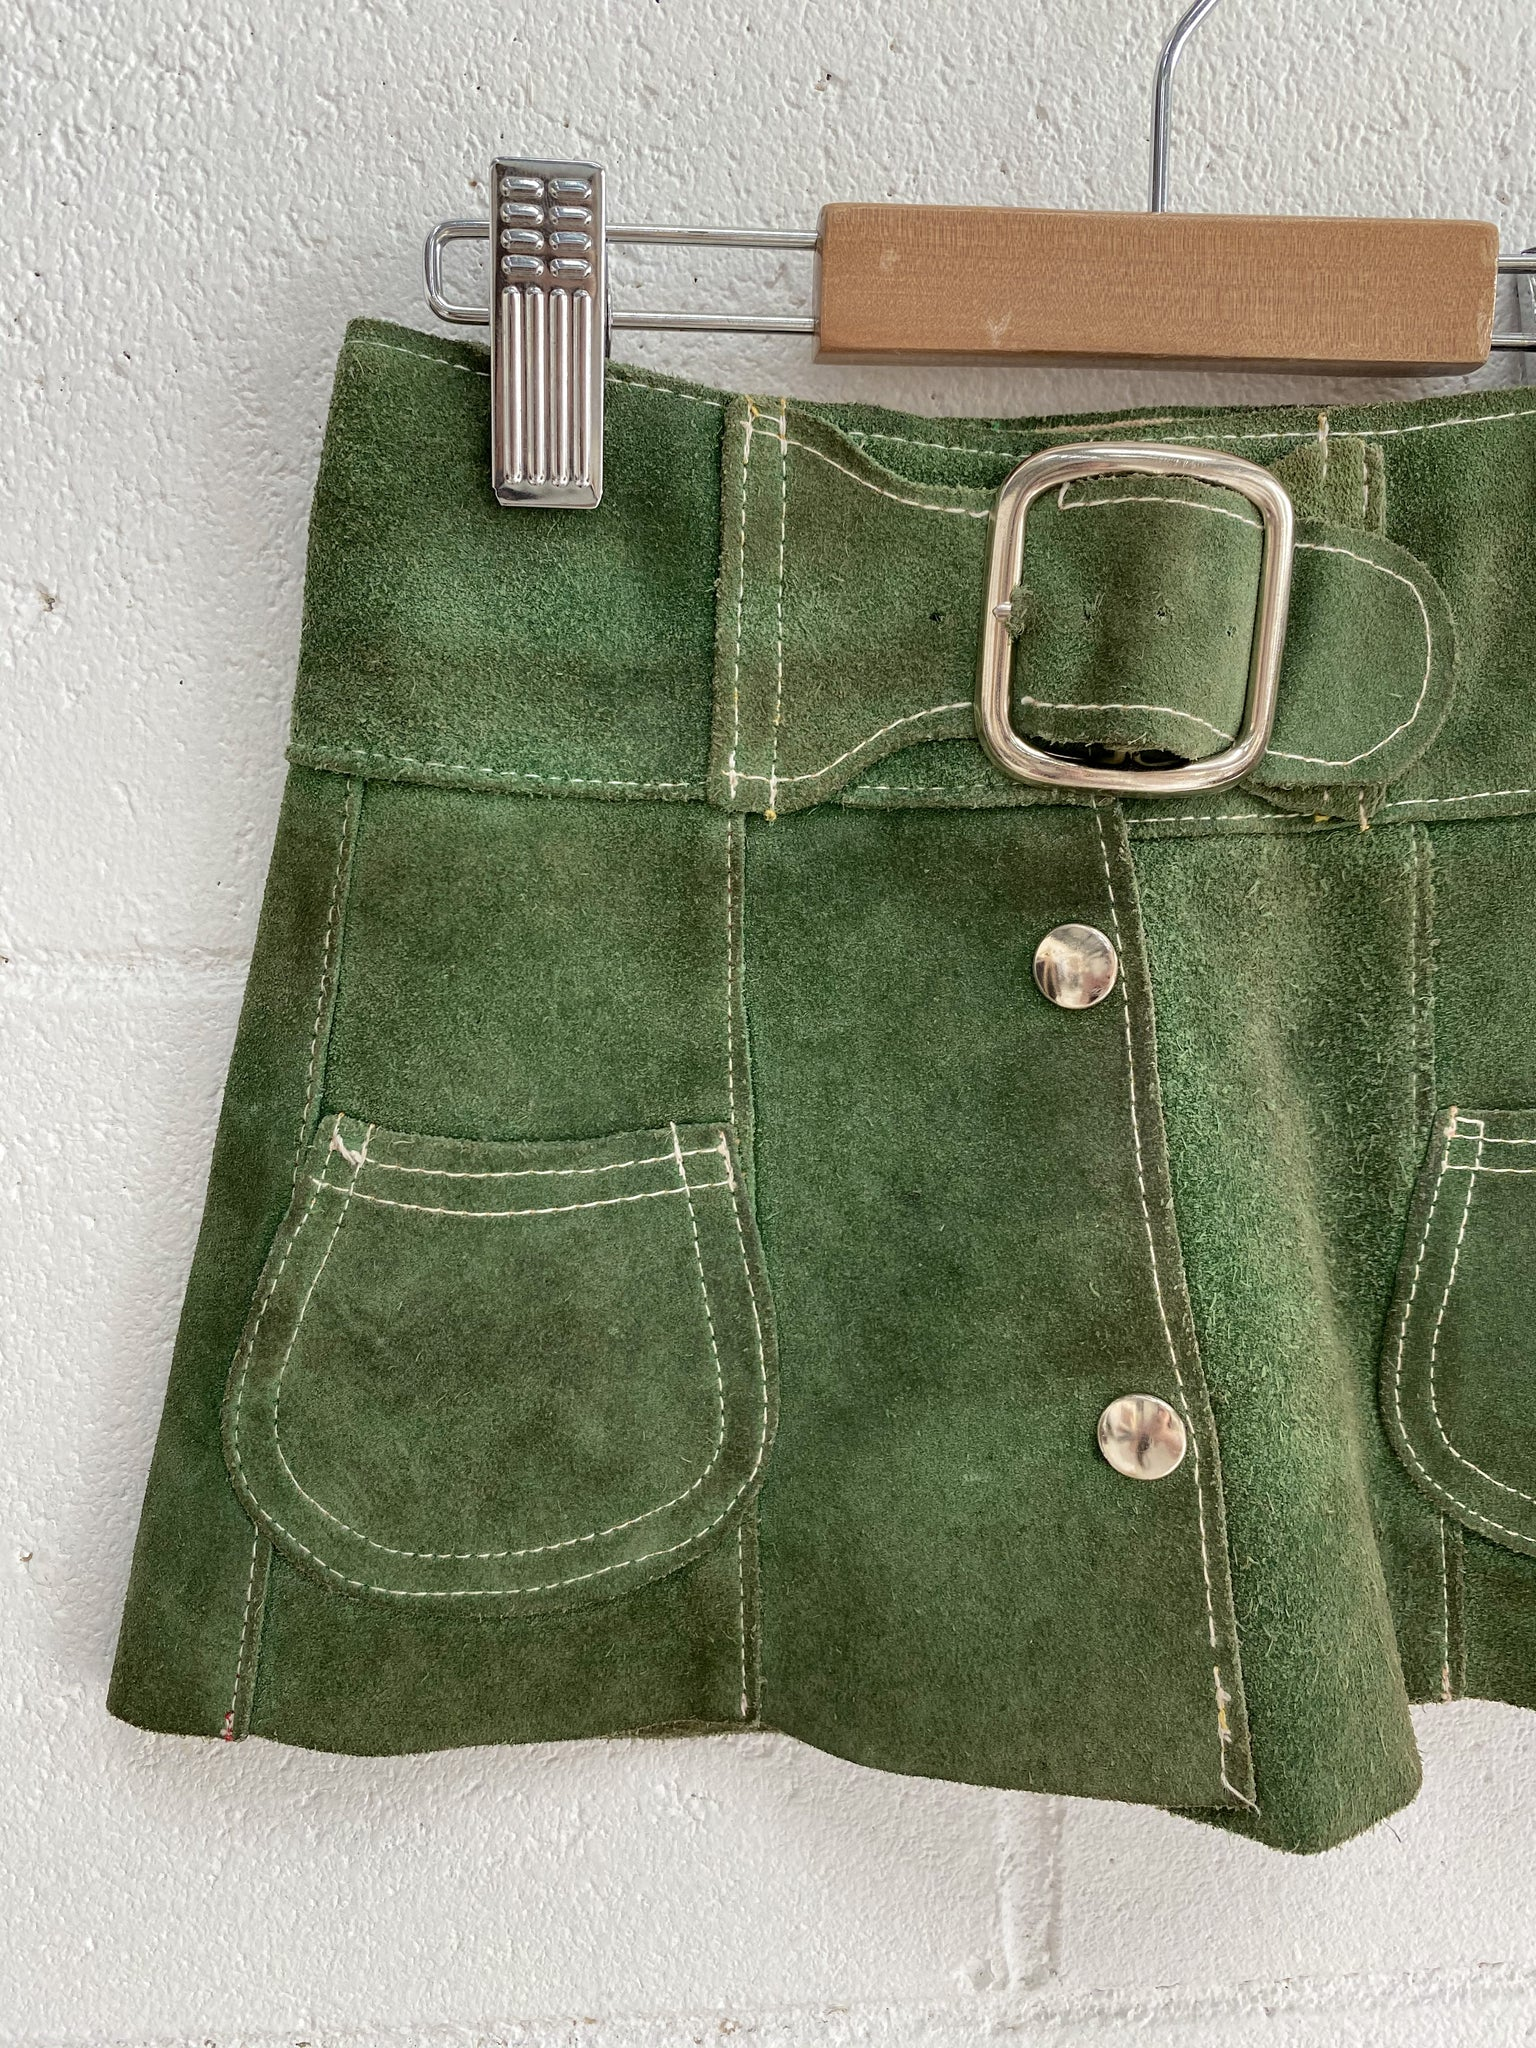 VINTAGE Kids 1960's Suede Leather Mini Skirt Size 1-2